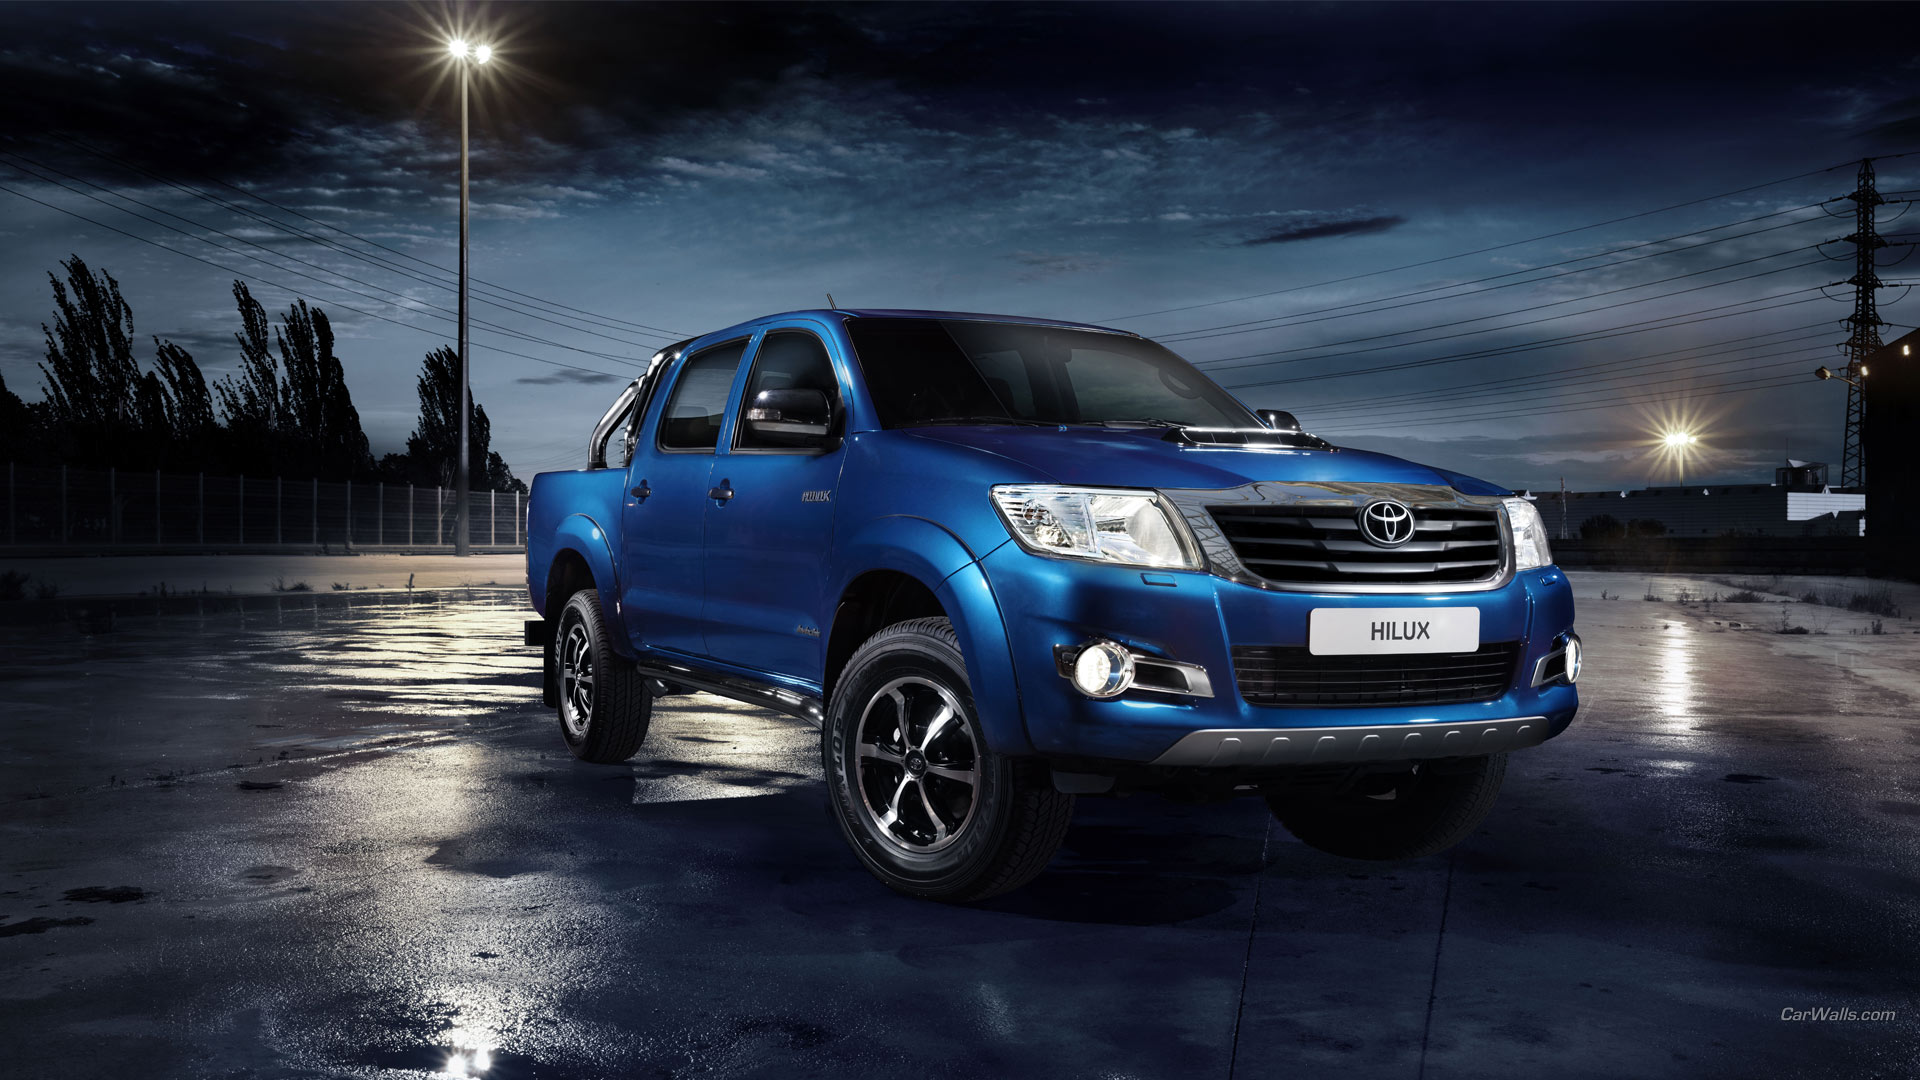 Car Wallpaper Full Hd 1080x1920 Toyota Hilux Full Hd Wallpaper And Background Image